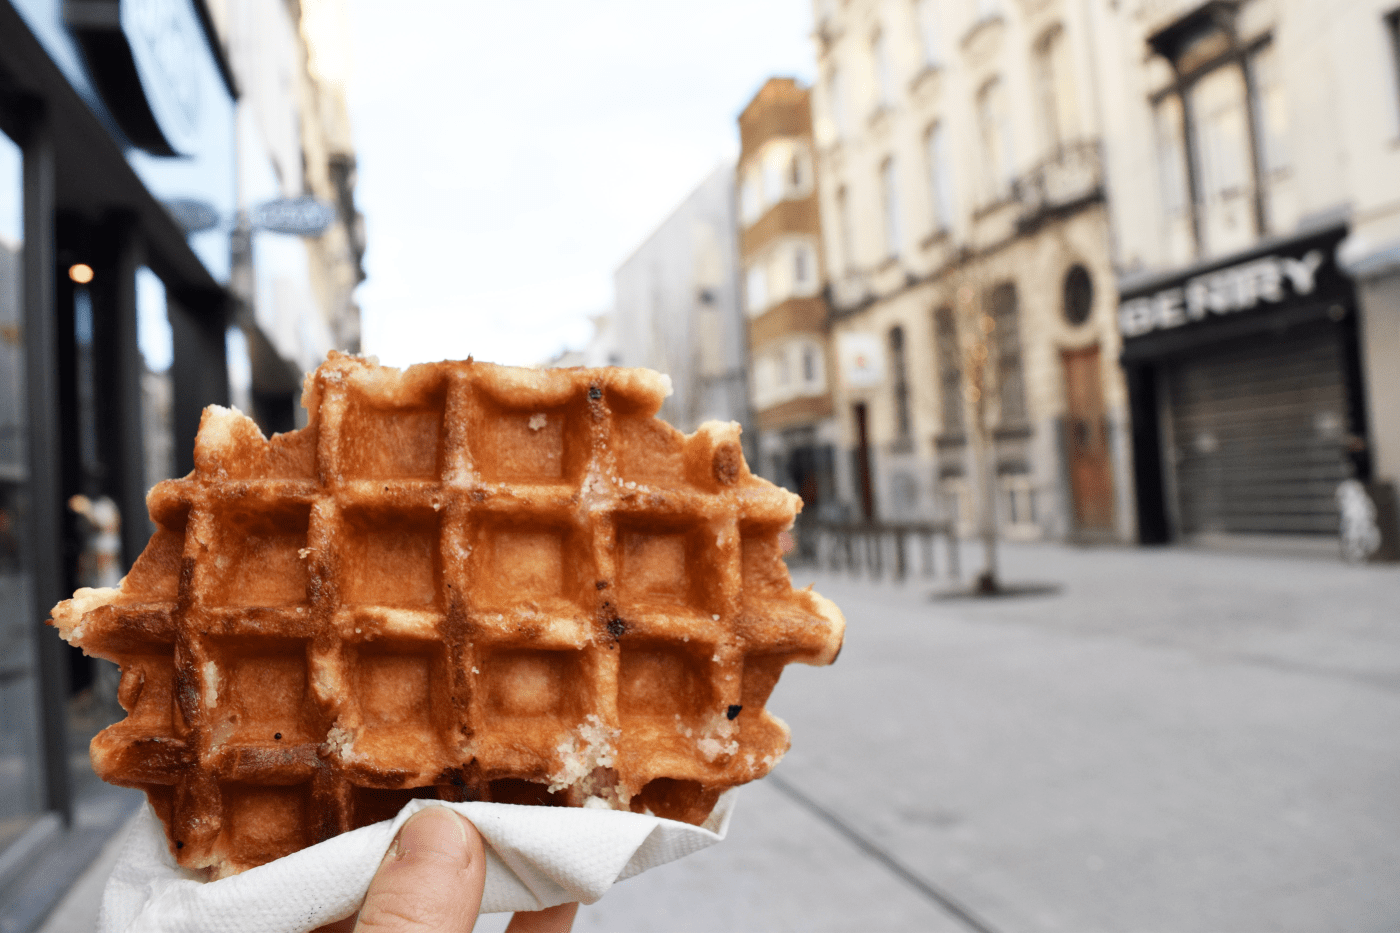 Musicians visited Mechelen to shop for chocolate, sightsee, and enjoy famous Belgian waffles before journeying to Delft, the Netherlands. (photo: Annie Kim)